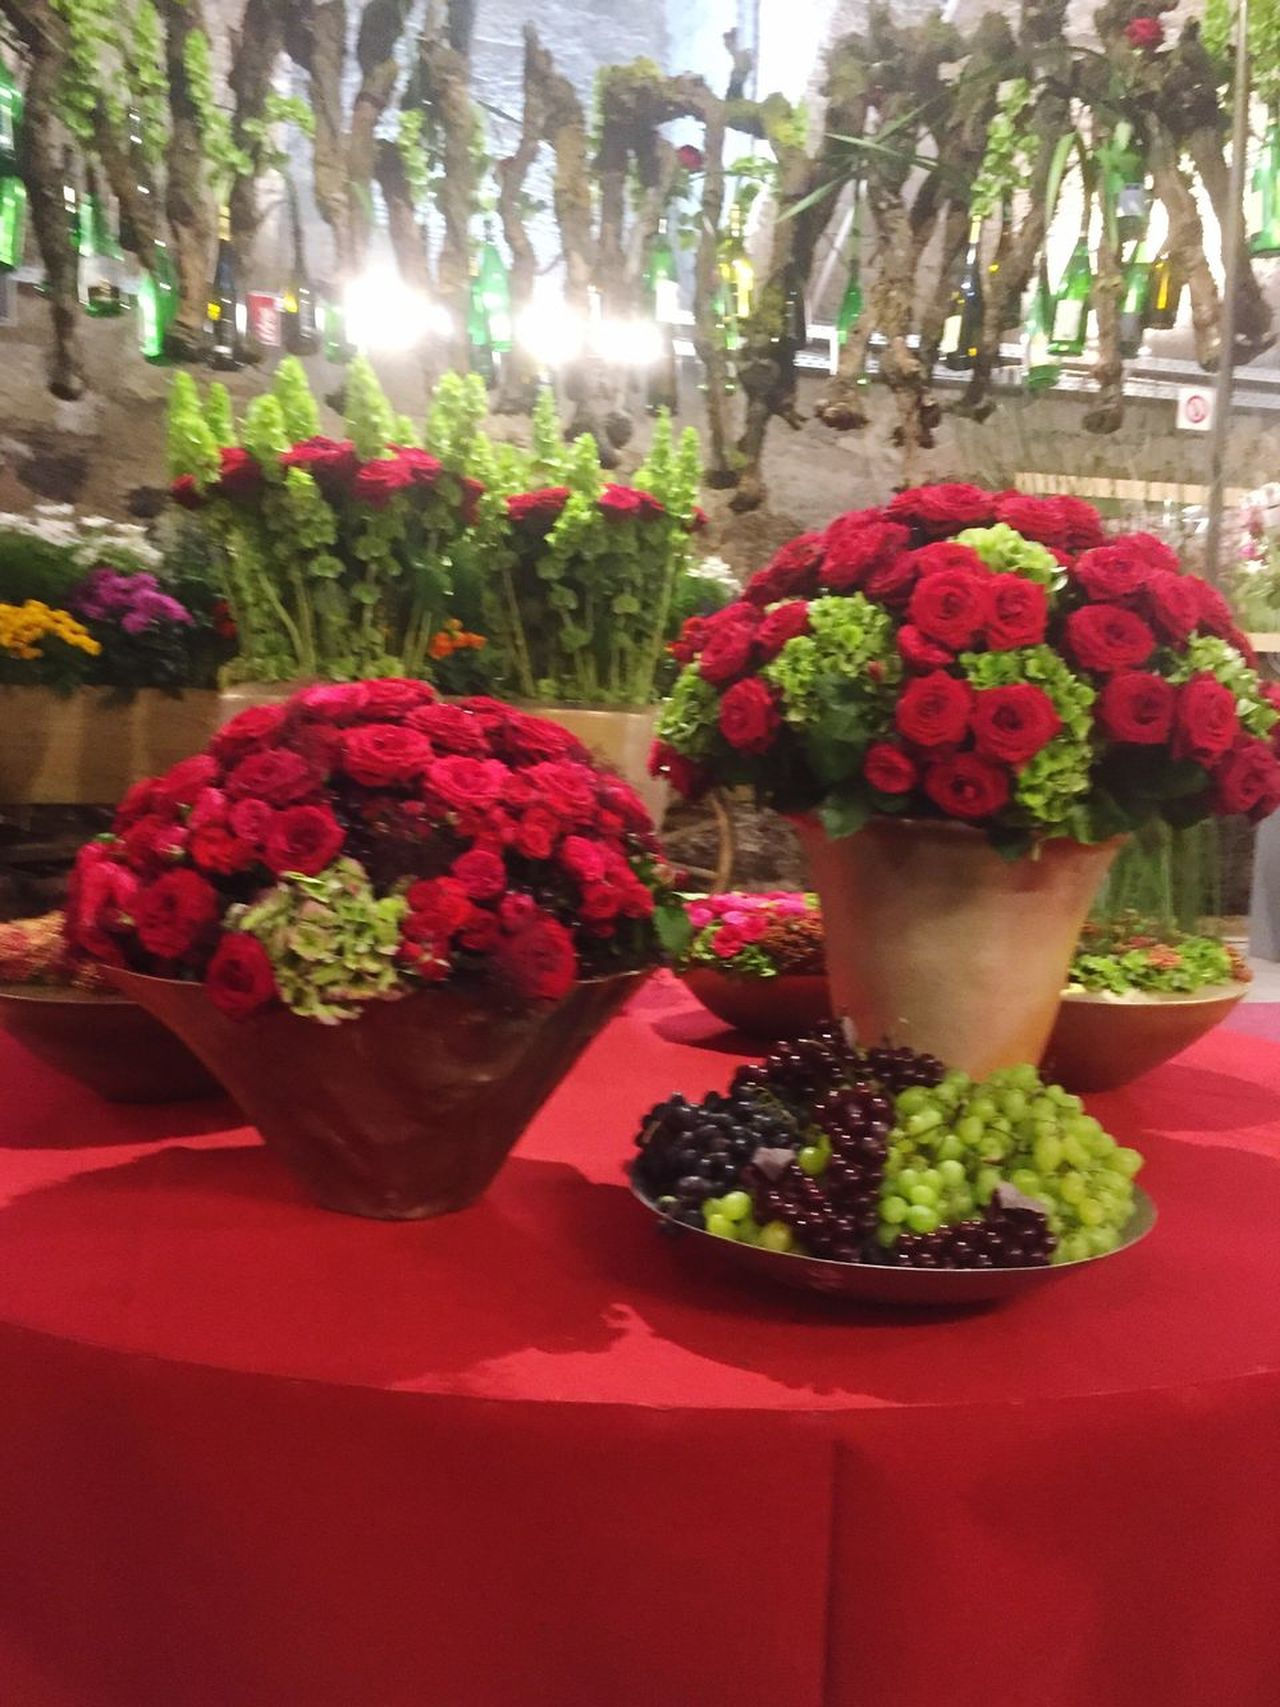 Table with red flower decoration Freshness Flower Red No People Table Growth Day Indoors  Nature Close-up Anniversary Mother's Day Flower Arrangement Decoration Flower Market